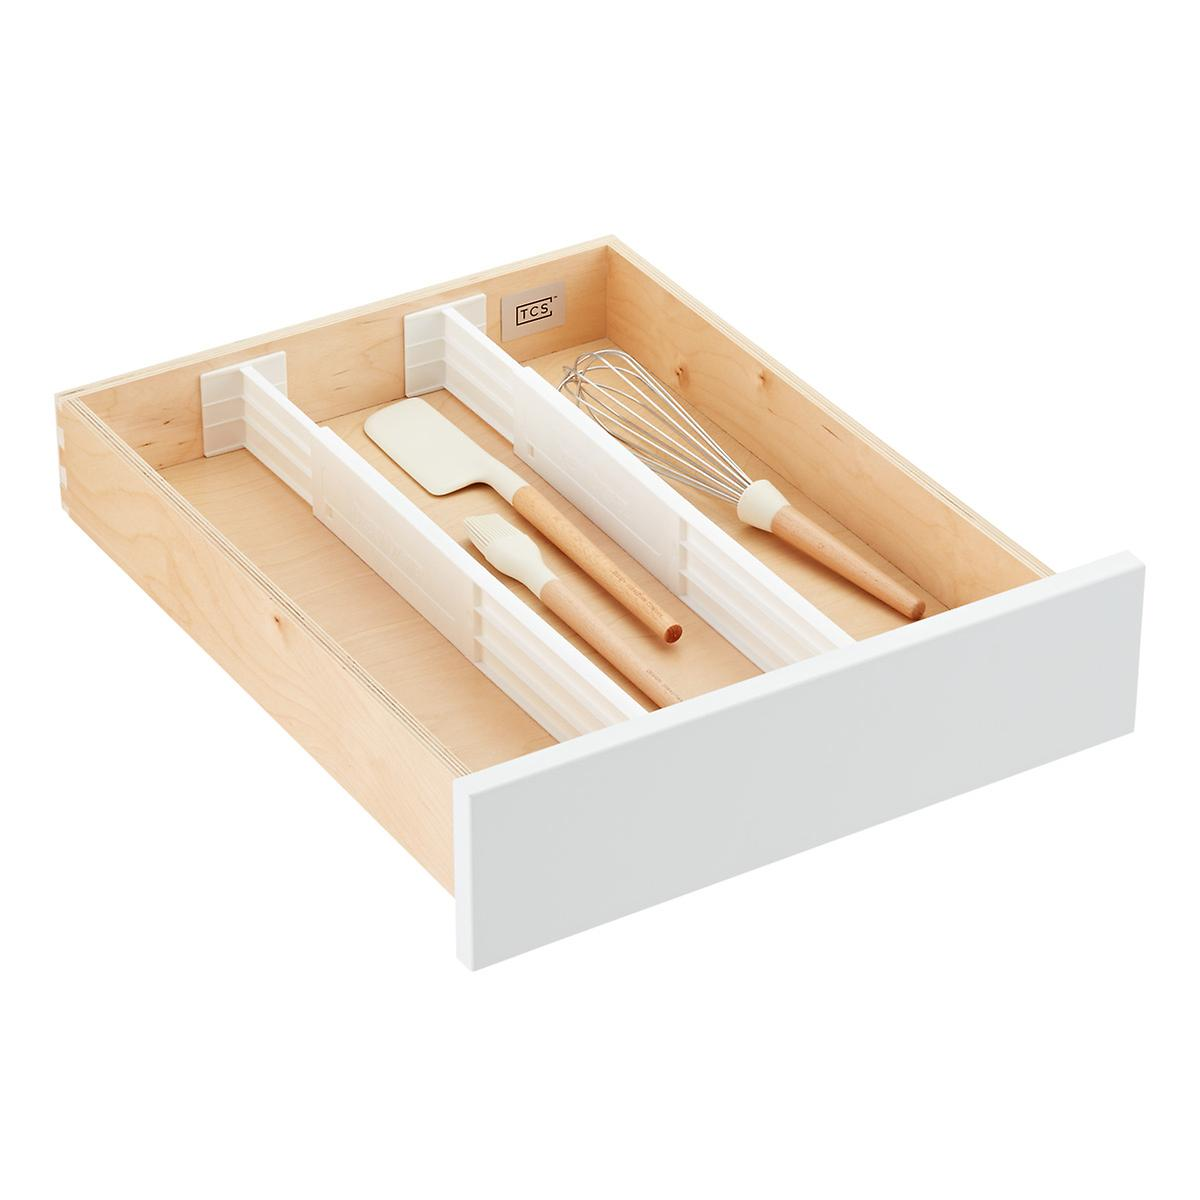 3 dream drawer organizers the container store for Bathroom drawer organizer